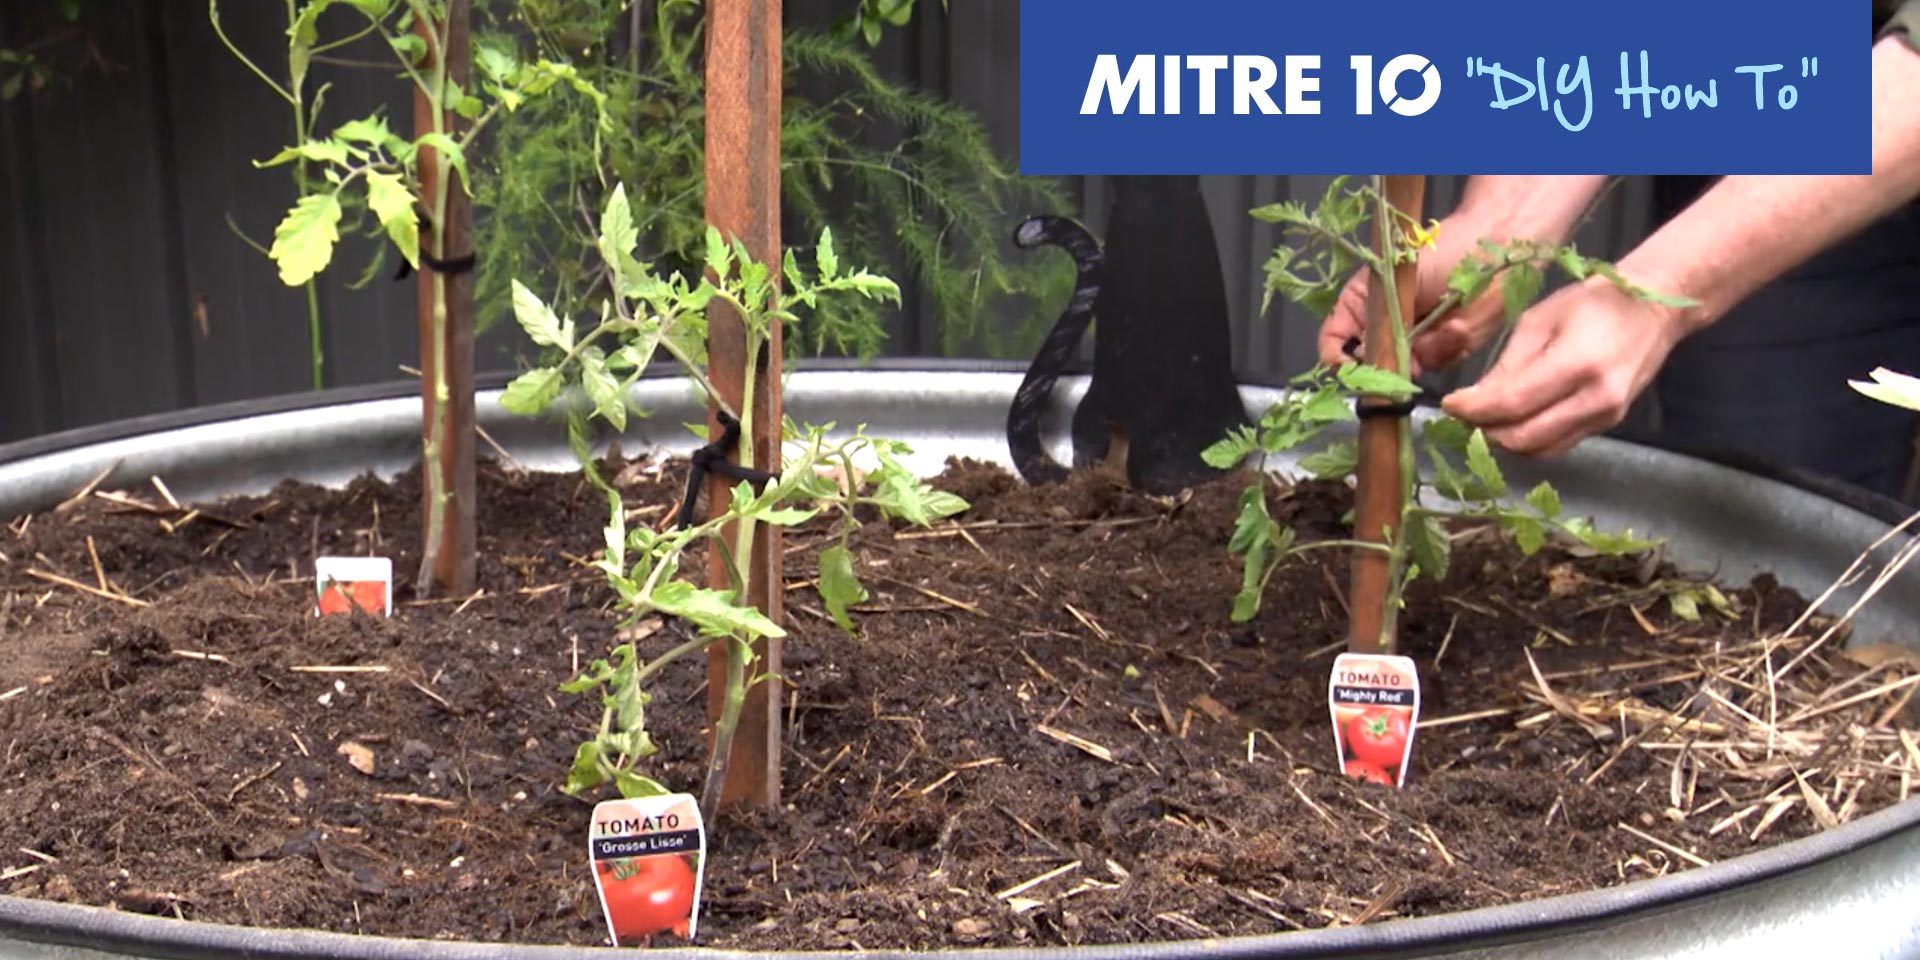 Mitre 10 DIY Staking Tomato Plant   In The Garden with Kim Syrus